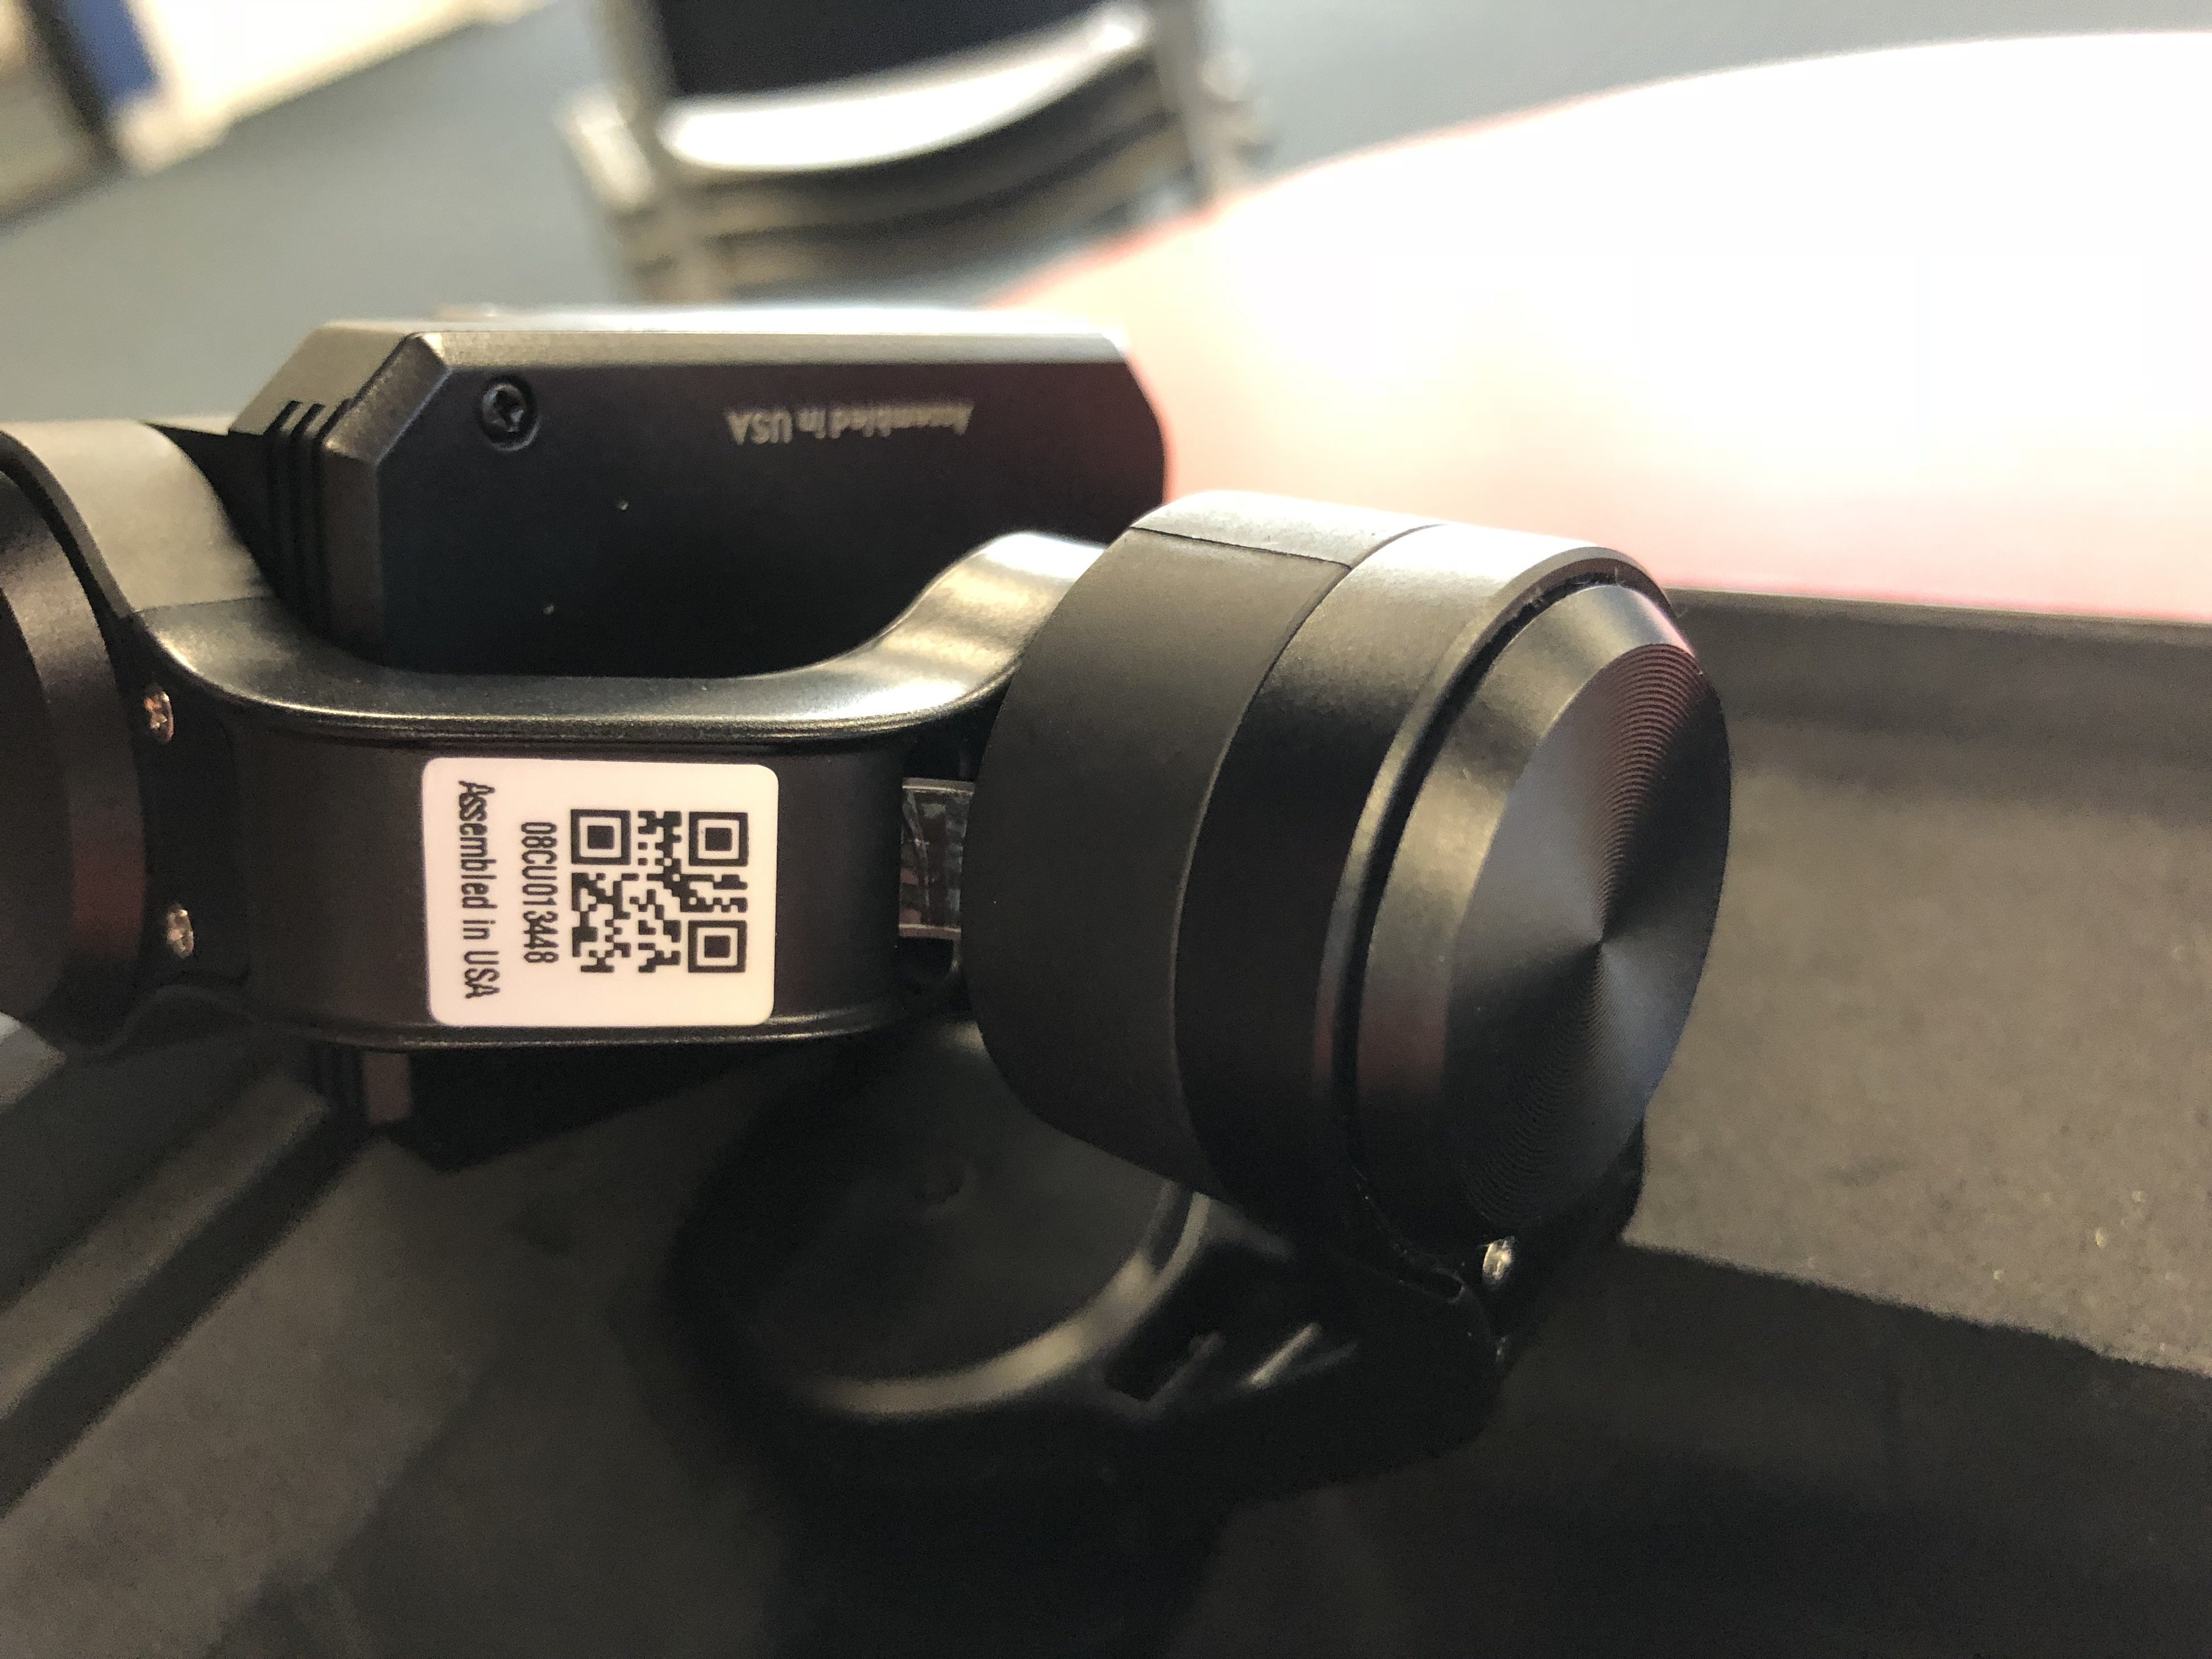 DJI Zenmuse XTR: 640 x 512, 30Hz, 13mm lens with Adv Radiometry